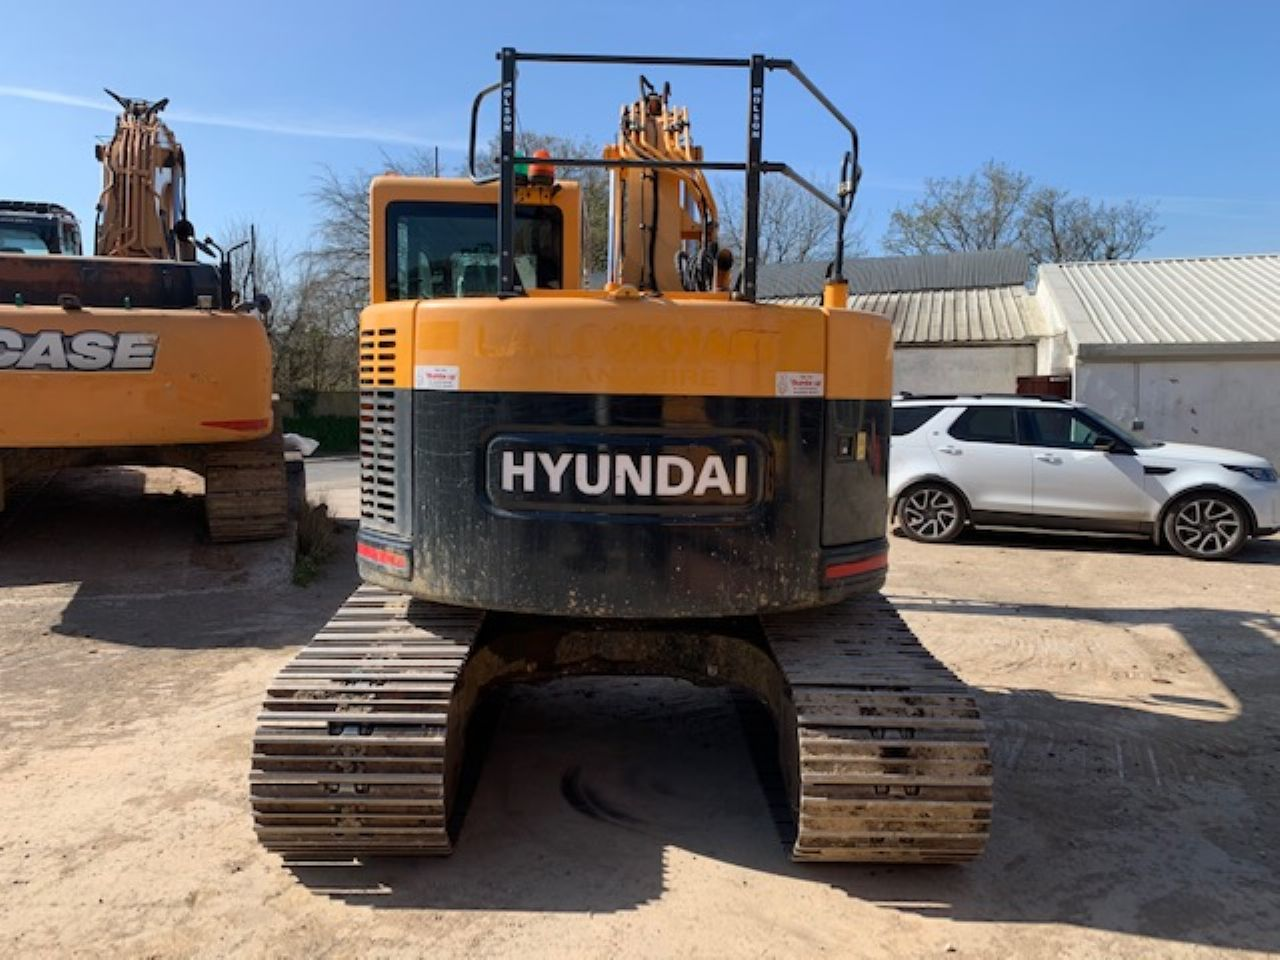 HYUNDAI R145LCR-9A EXCAVATOR - Picture 2